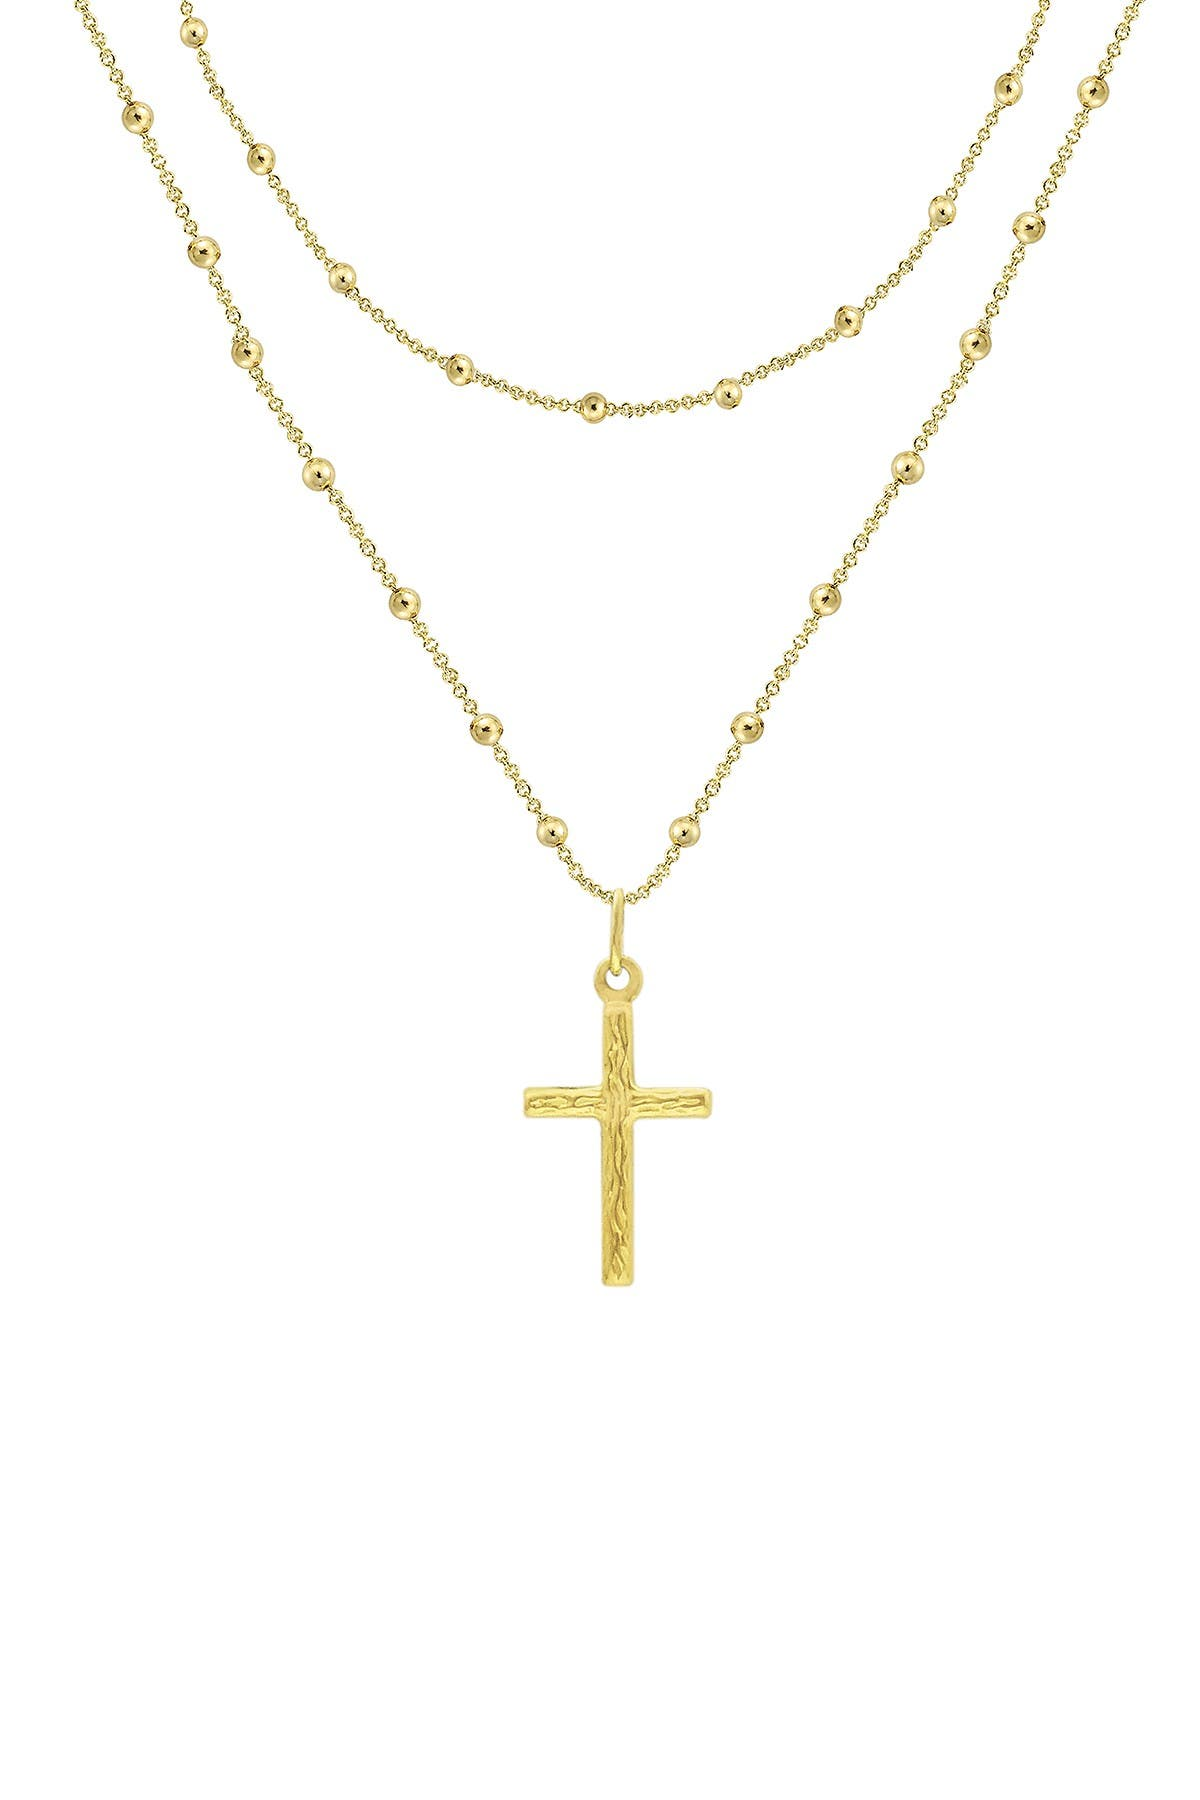 Image of Savvy Cie 14K Yellow Gold Vermeil Italian Rosary Bead Layer Necklace